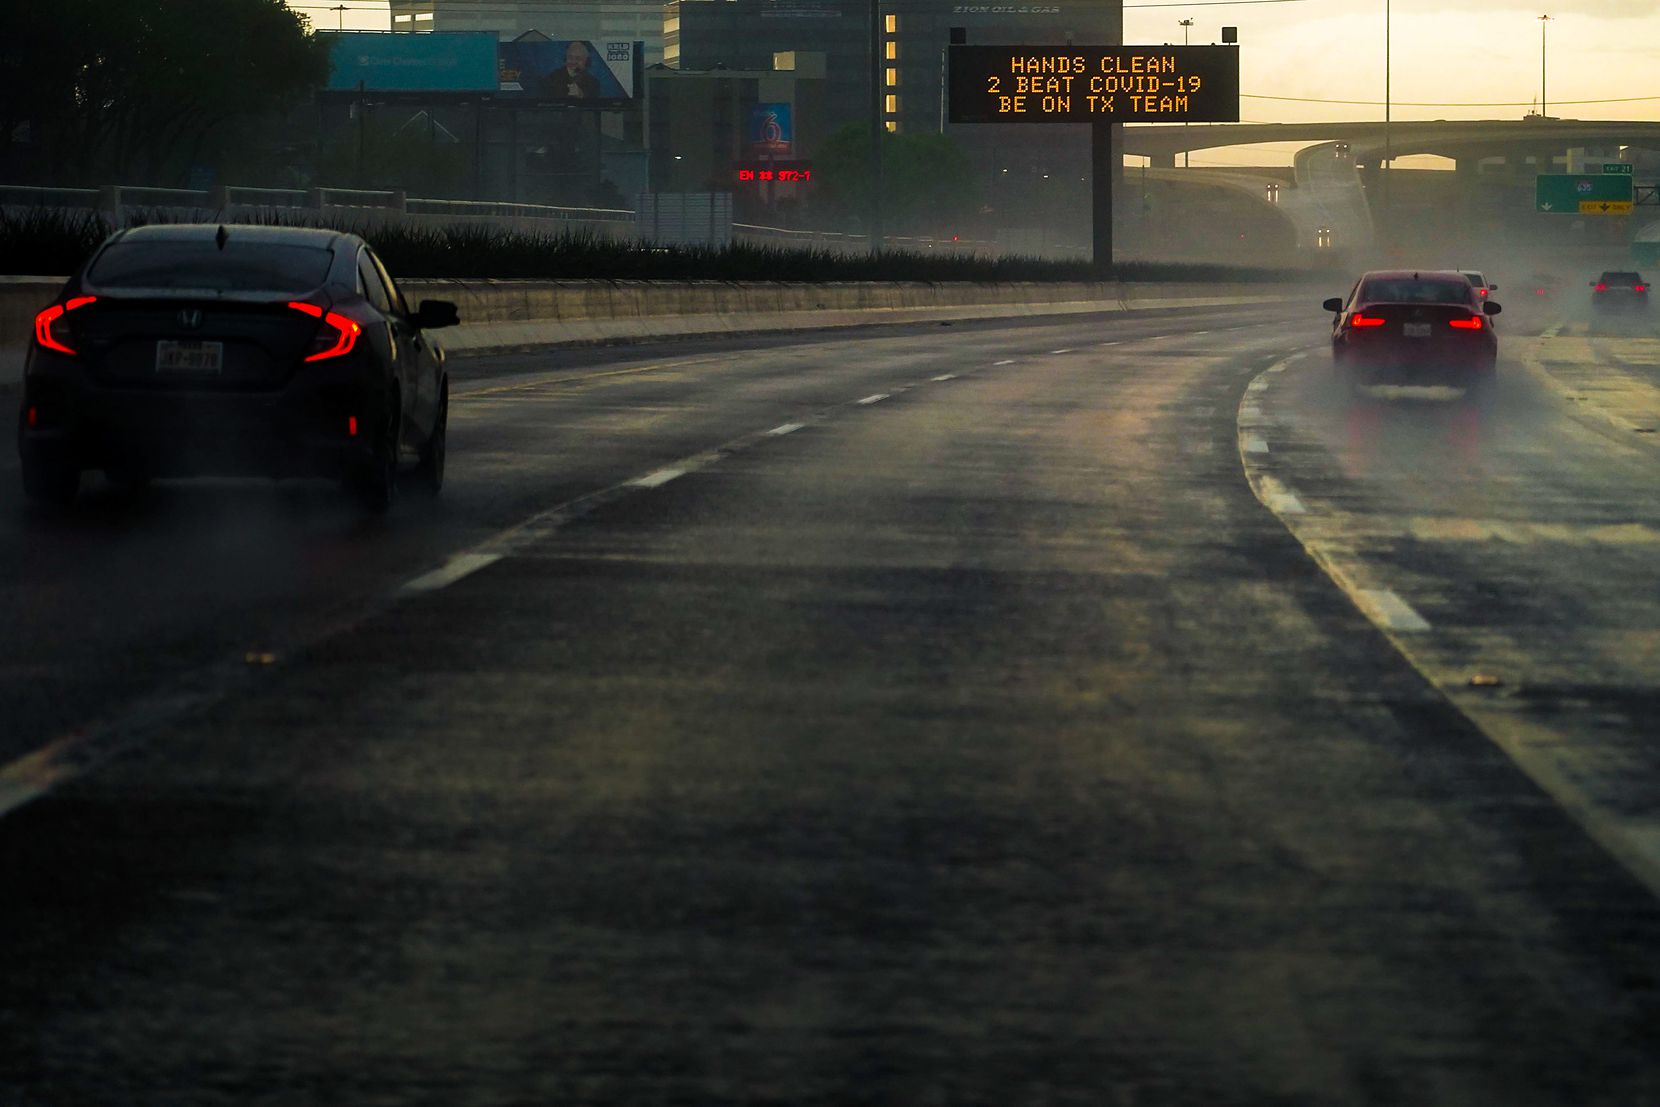 A traffic sign gave advice on hand-washing to combat COVID-19 as traffic headed north on U.S. 75 near Churchill Way in the rain on March 19, 2020, in Dallas. Contributing to the mounting gloom of the coronavirus pandemic, according to NBC5, it rained 11 straight days from March 12-22, setting an all-time record for days with consecutive rainfall.